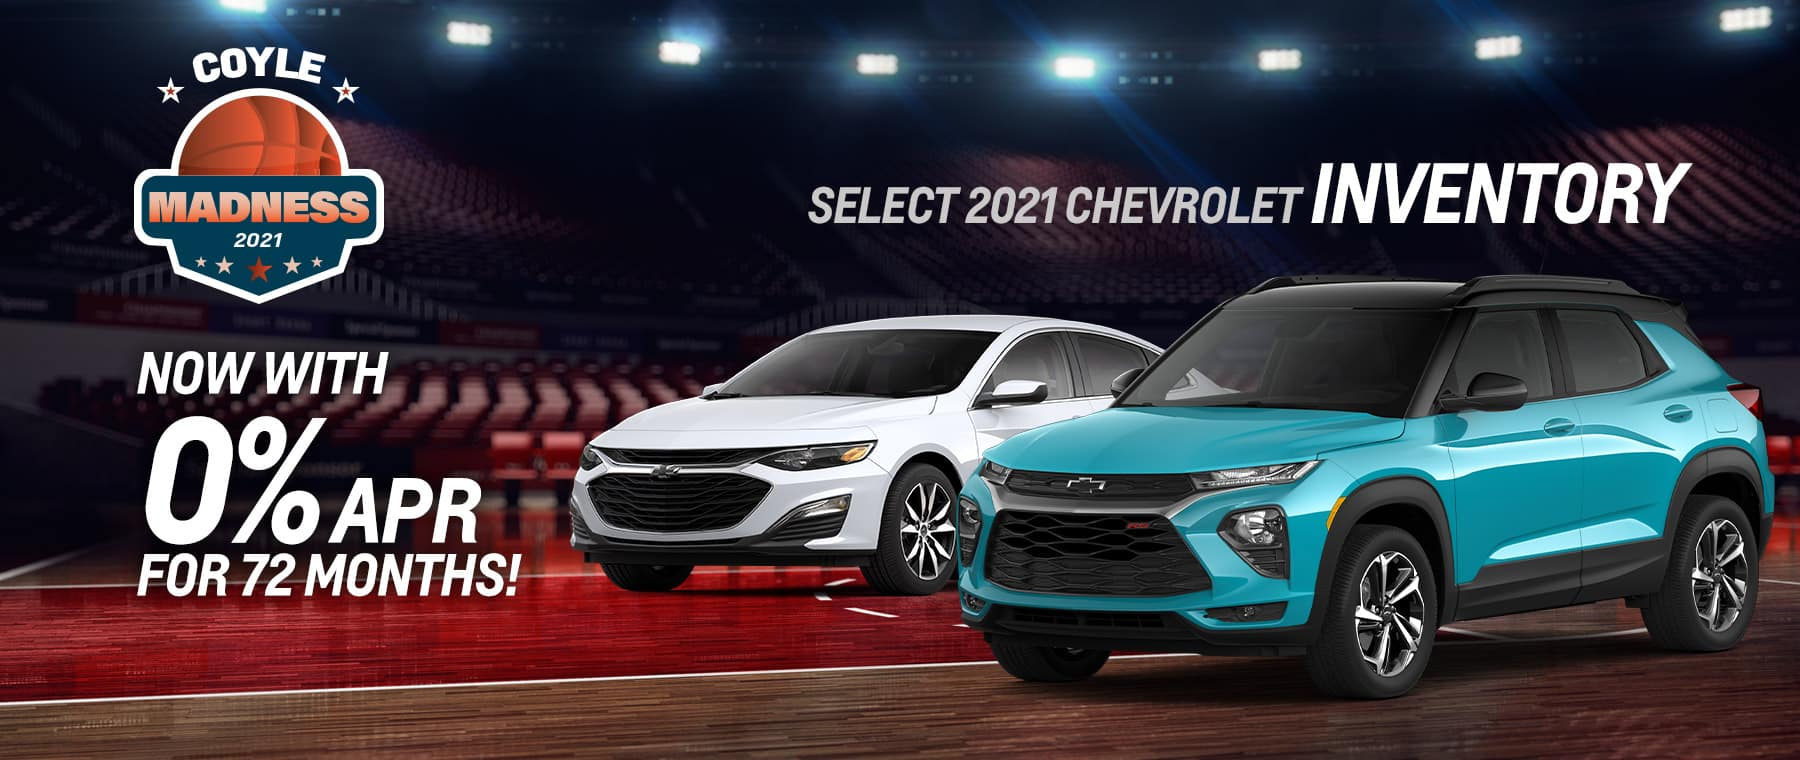 APR offer on NEW 2021 Chevrolet inventory near Clarksville IN